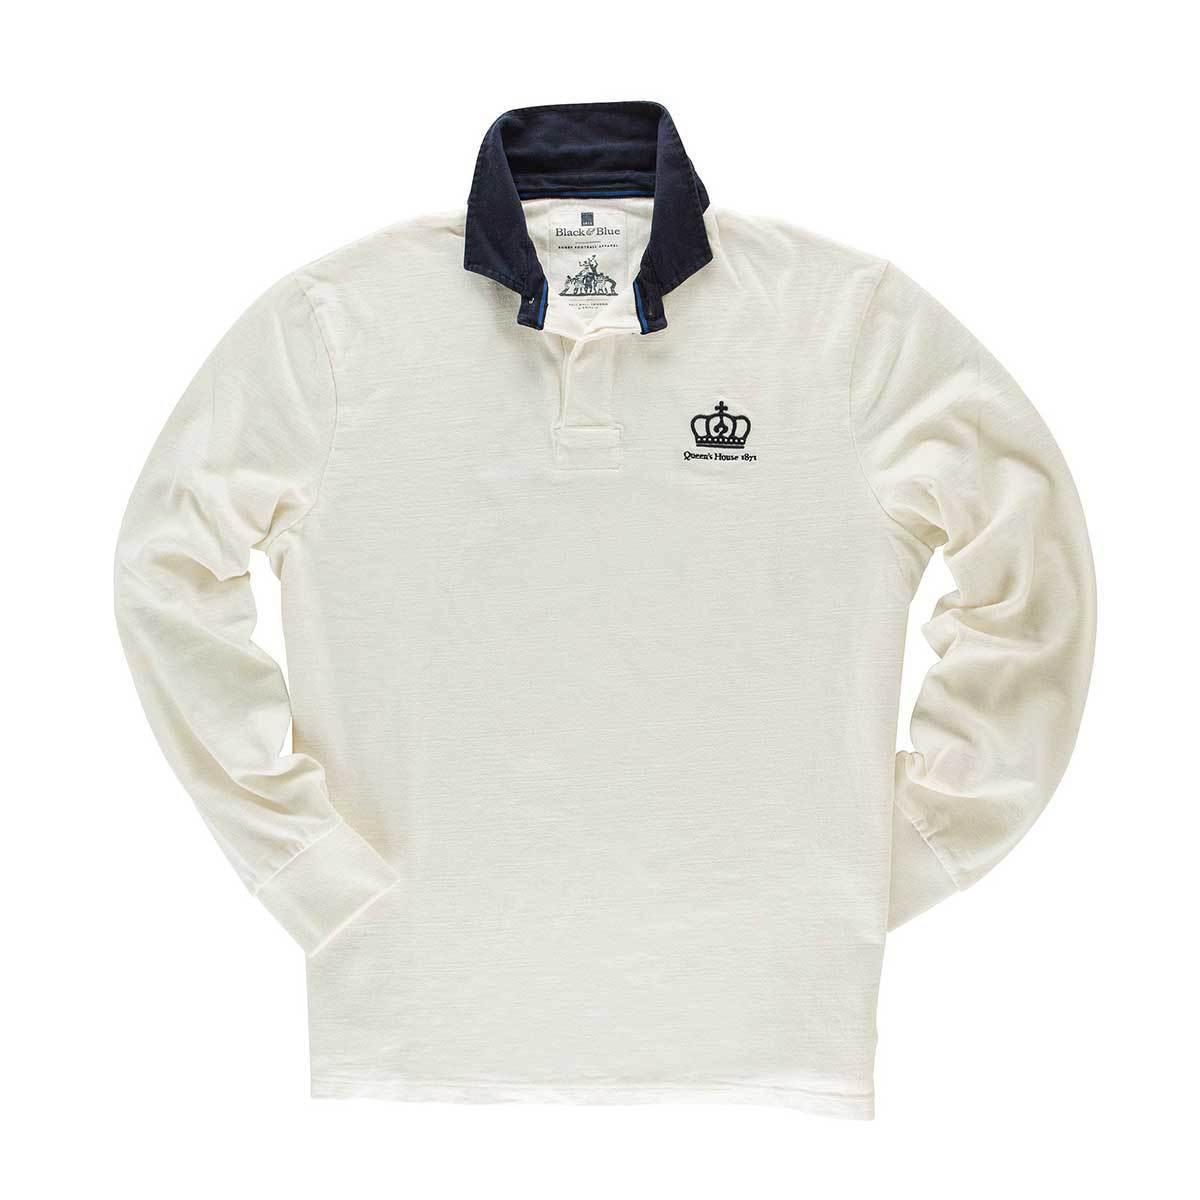 Black & Blue 1871 | Queen's House 1871 Rugby Shirt | Heavy Cotton Rugby Shirt